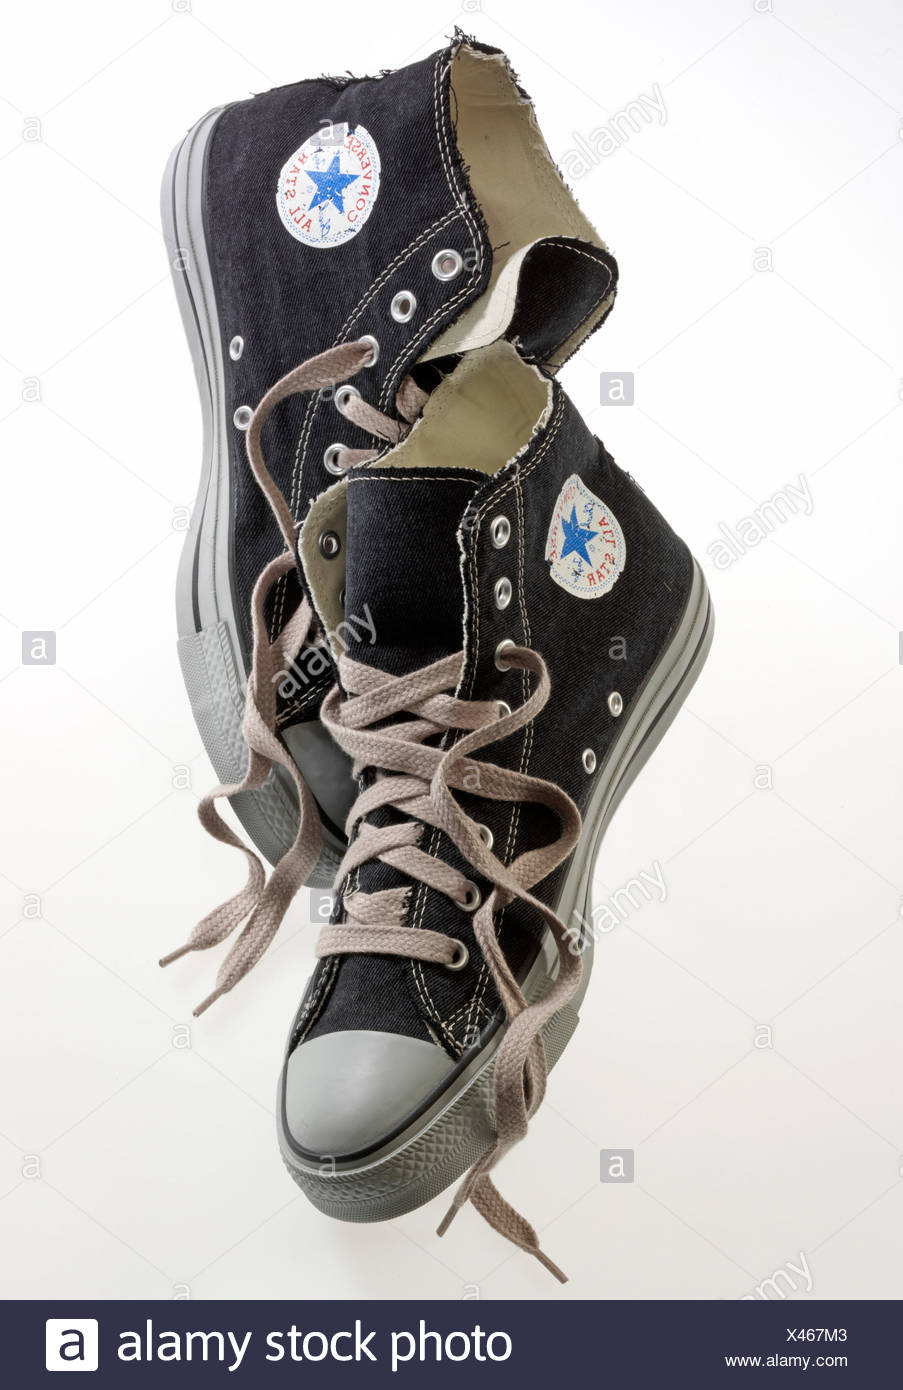 a02b282cb3e0 All Star Shoes Stock Photos   All Star Shoes Stock Images - Alamy